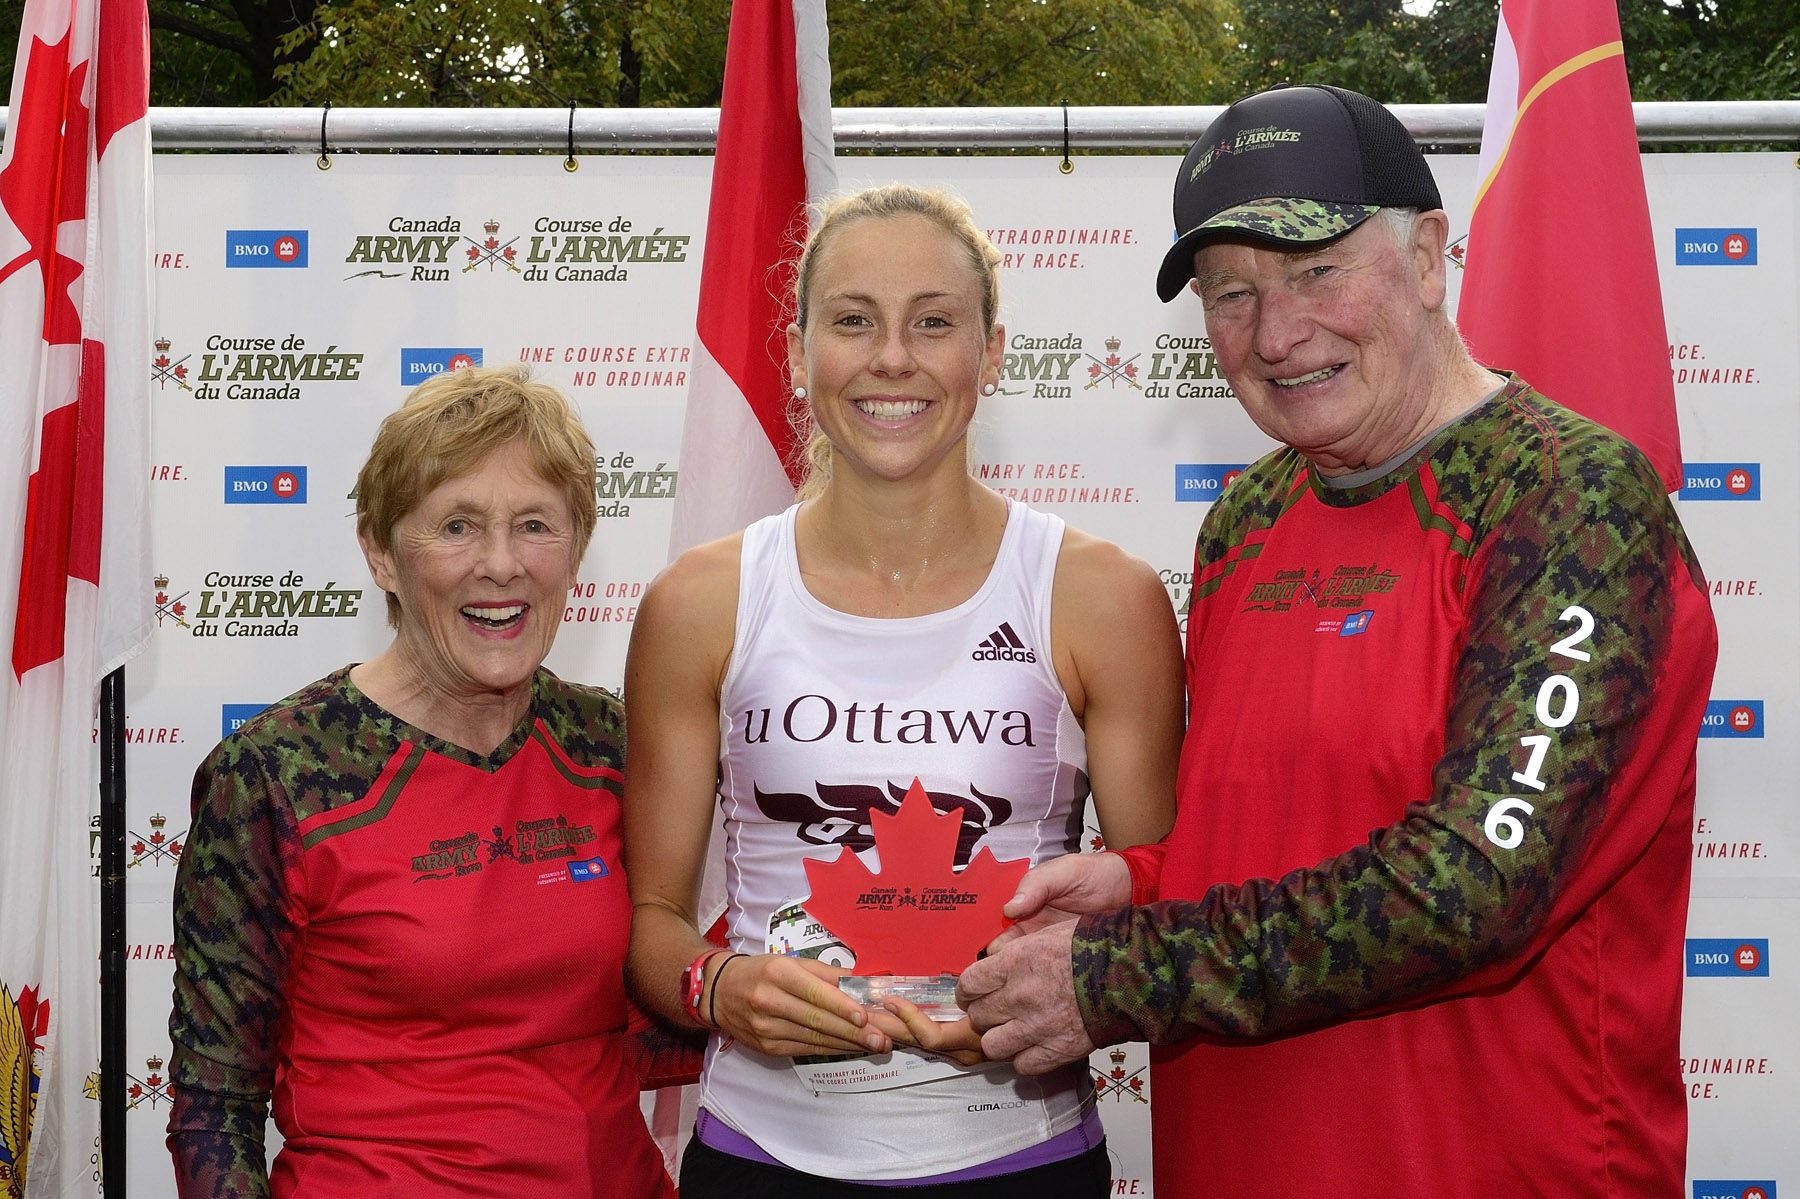 Their Excellencies presented the trophy to the woman who finished first in the five-kilometre run.